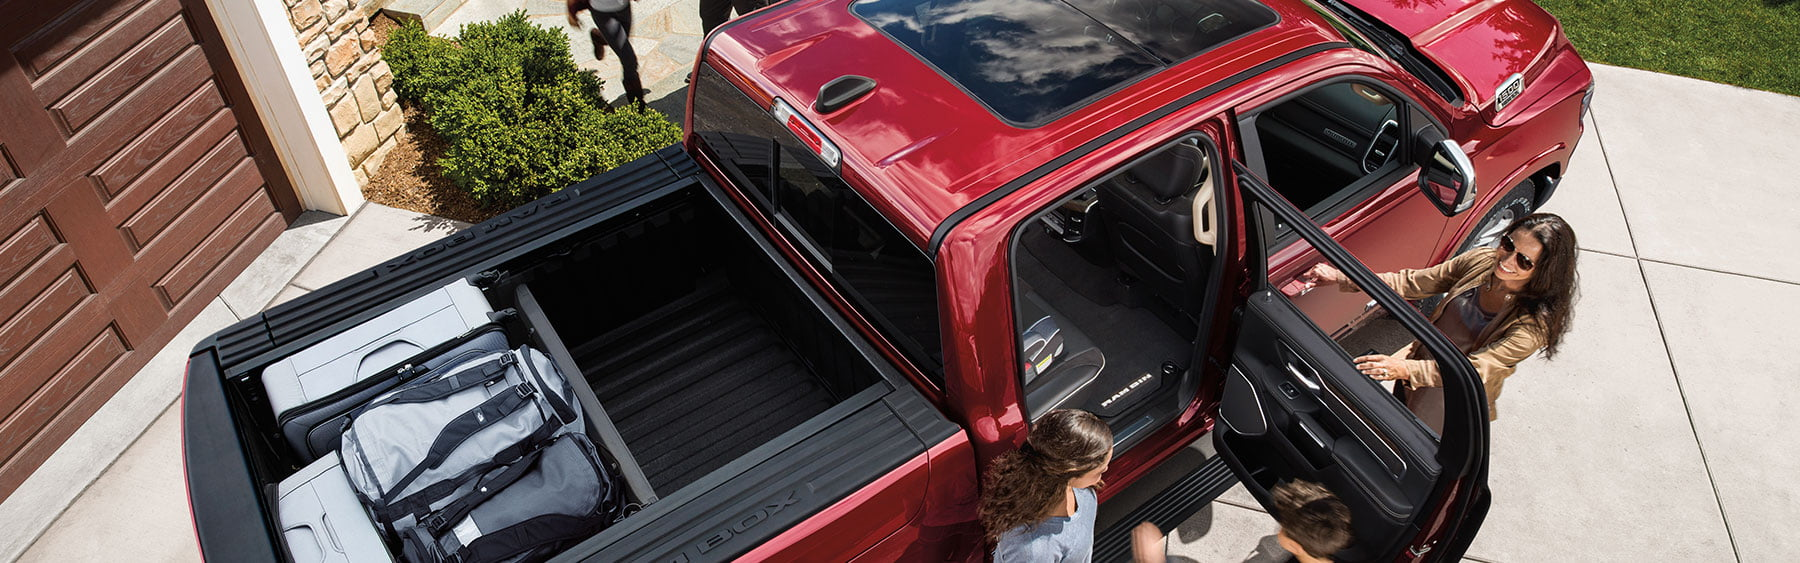 family holidays on ram trucks loading luggage on cargo